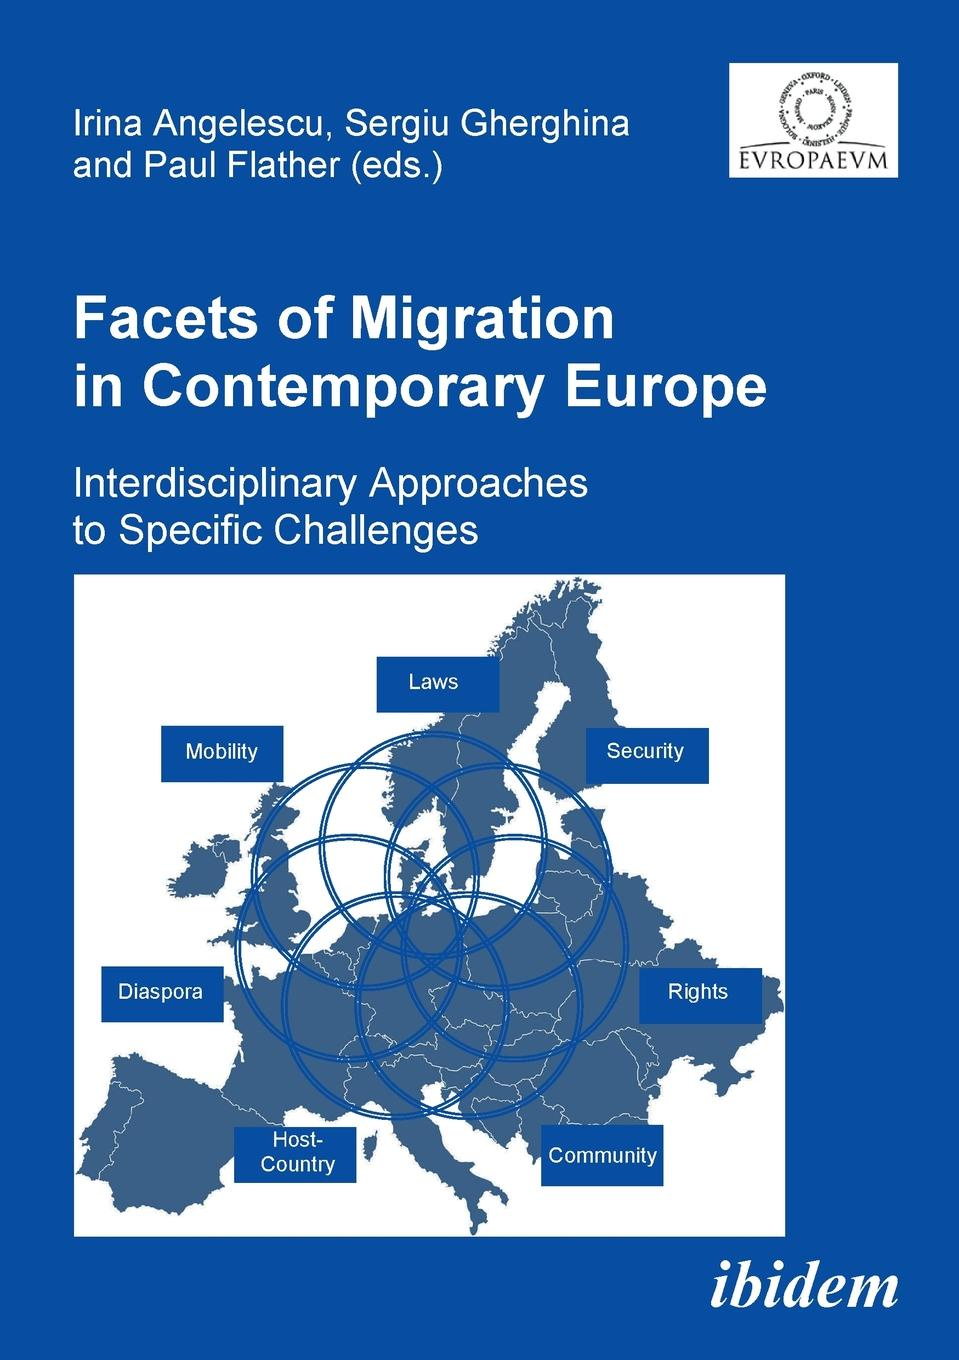 Facets of Migration in Contemporary Europe. Interdisciplinary Approaches to Specific Challenges